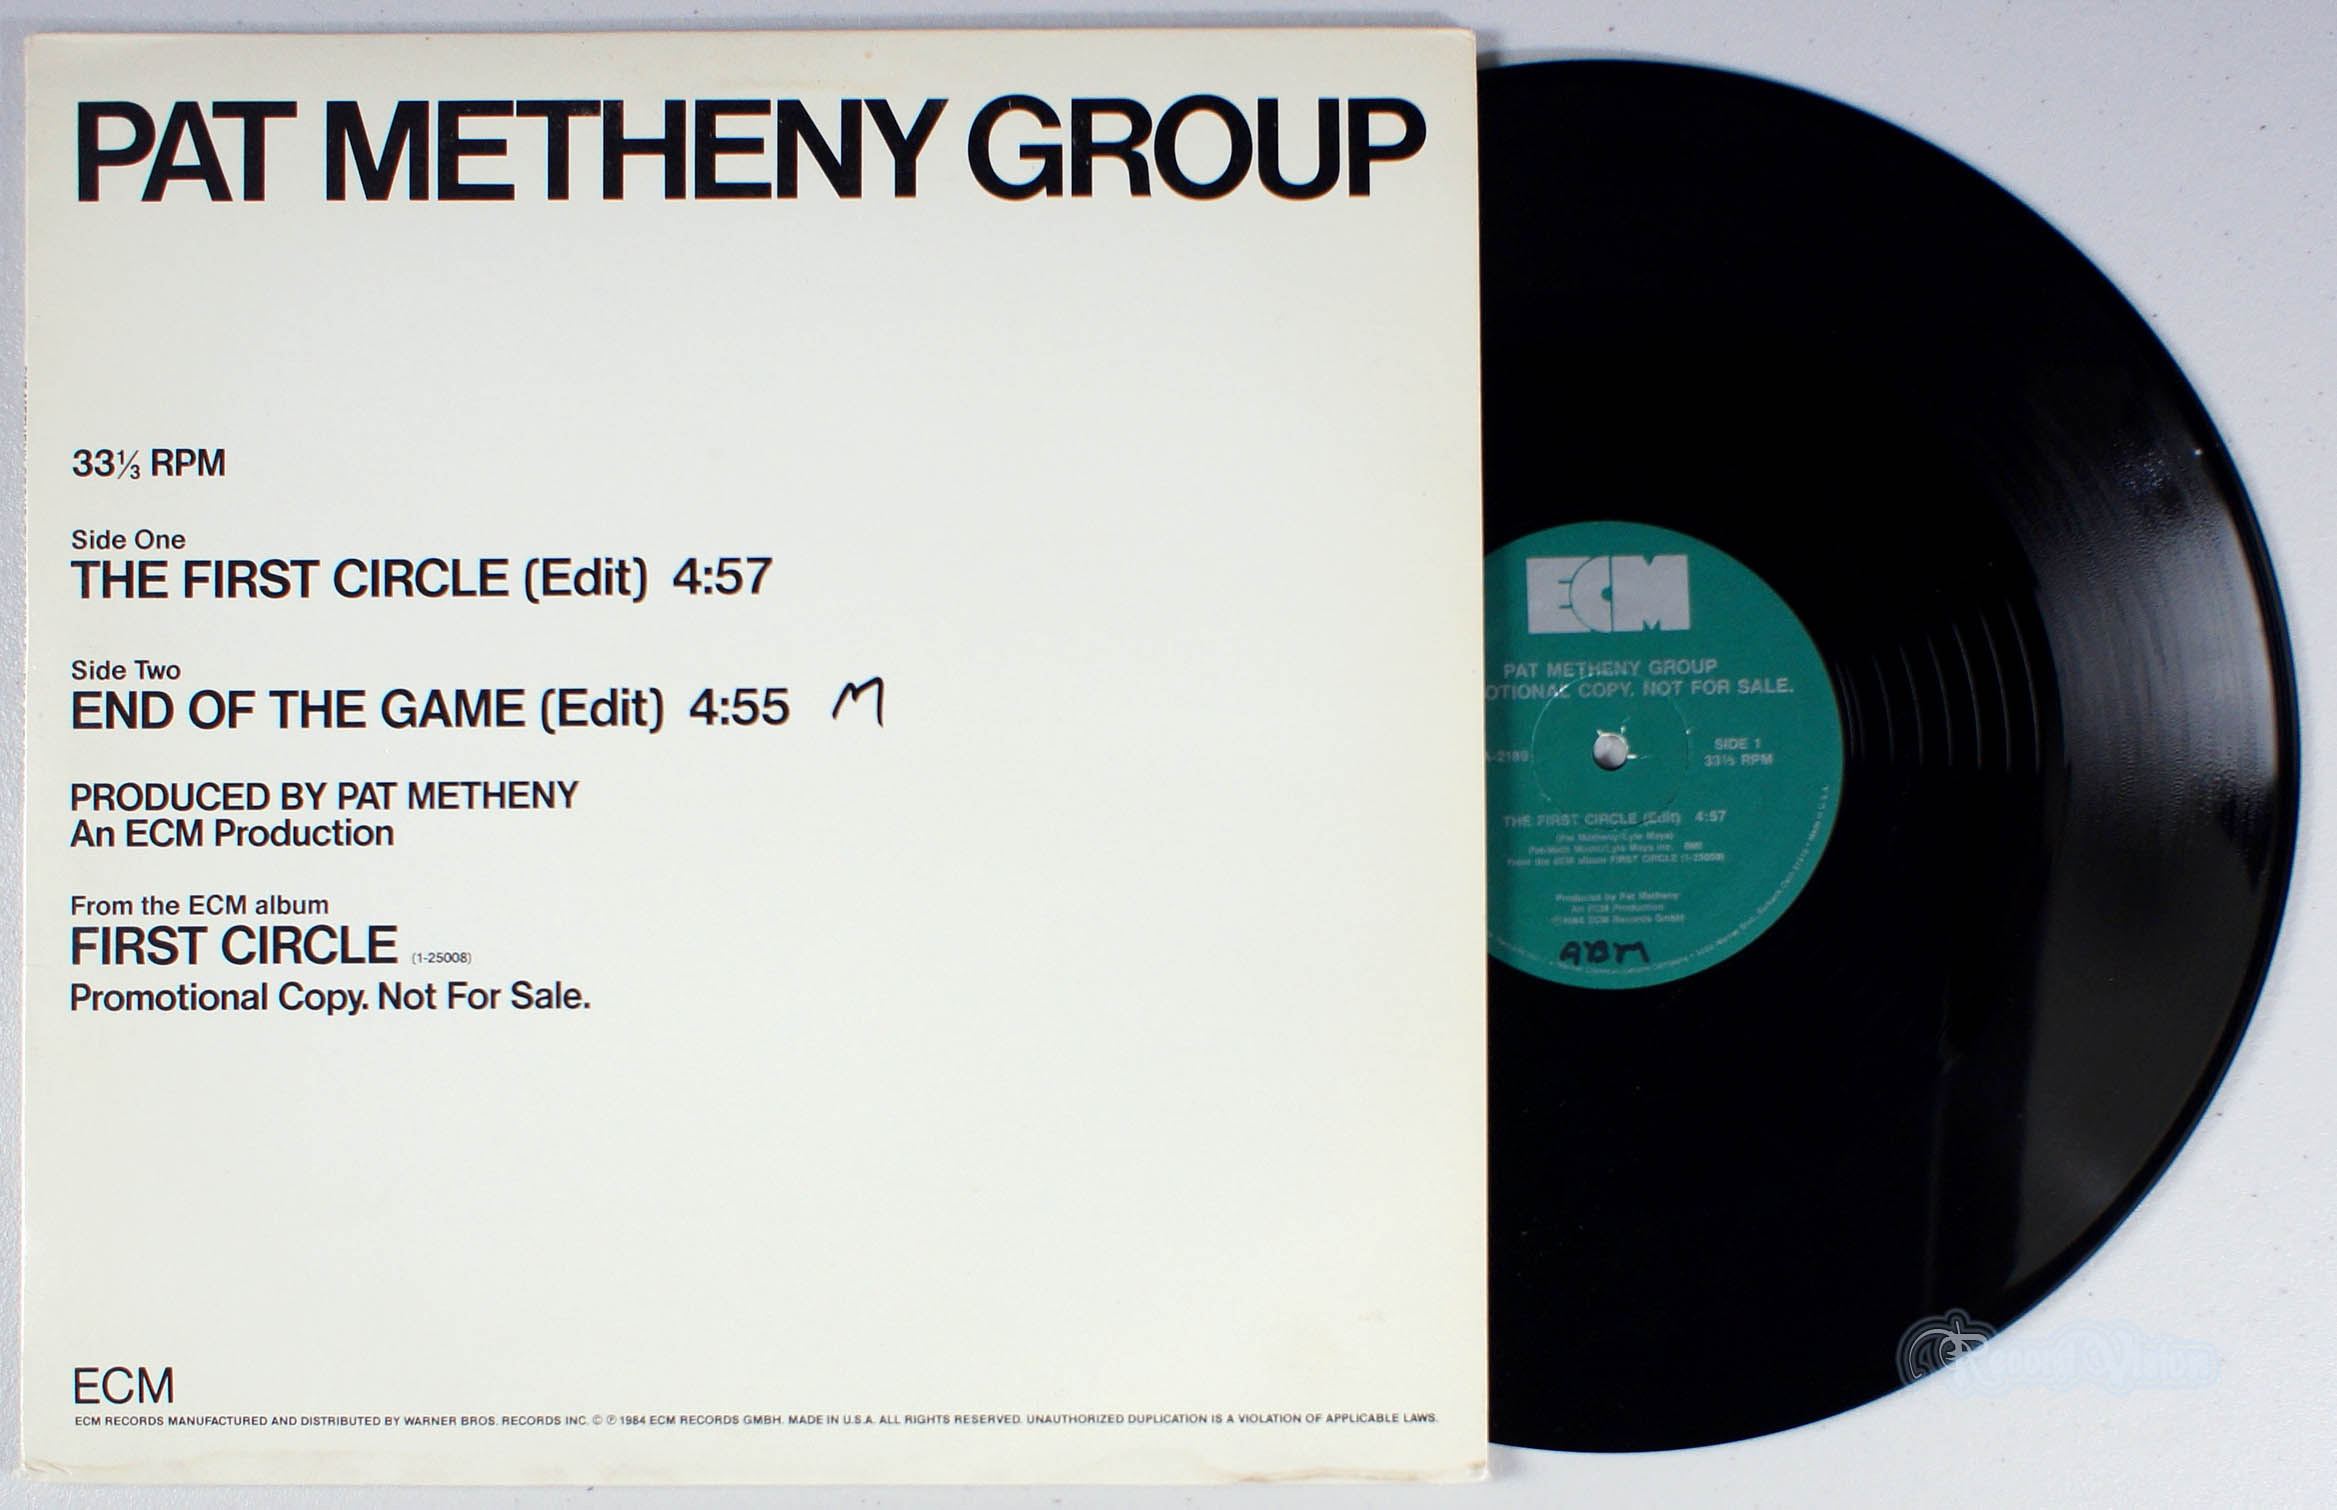 PAT METHENY GROUP - The First Circle - 12 inch x 1